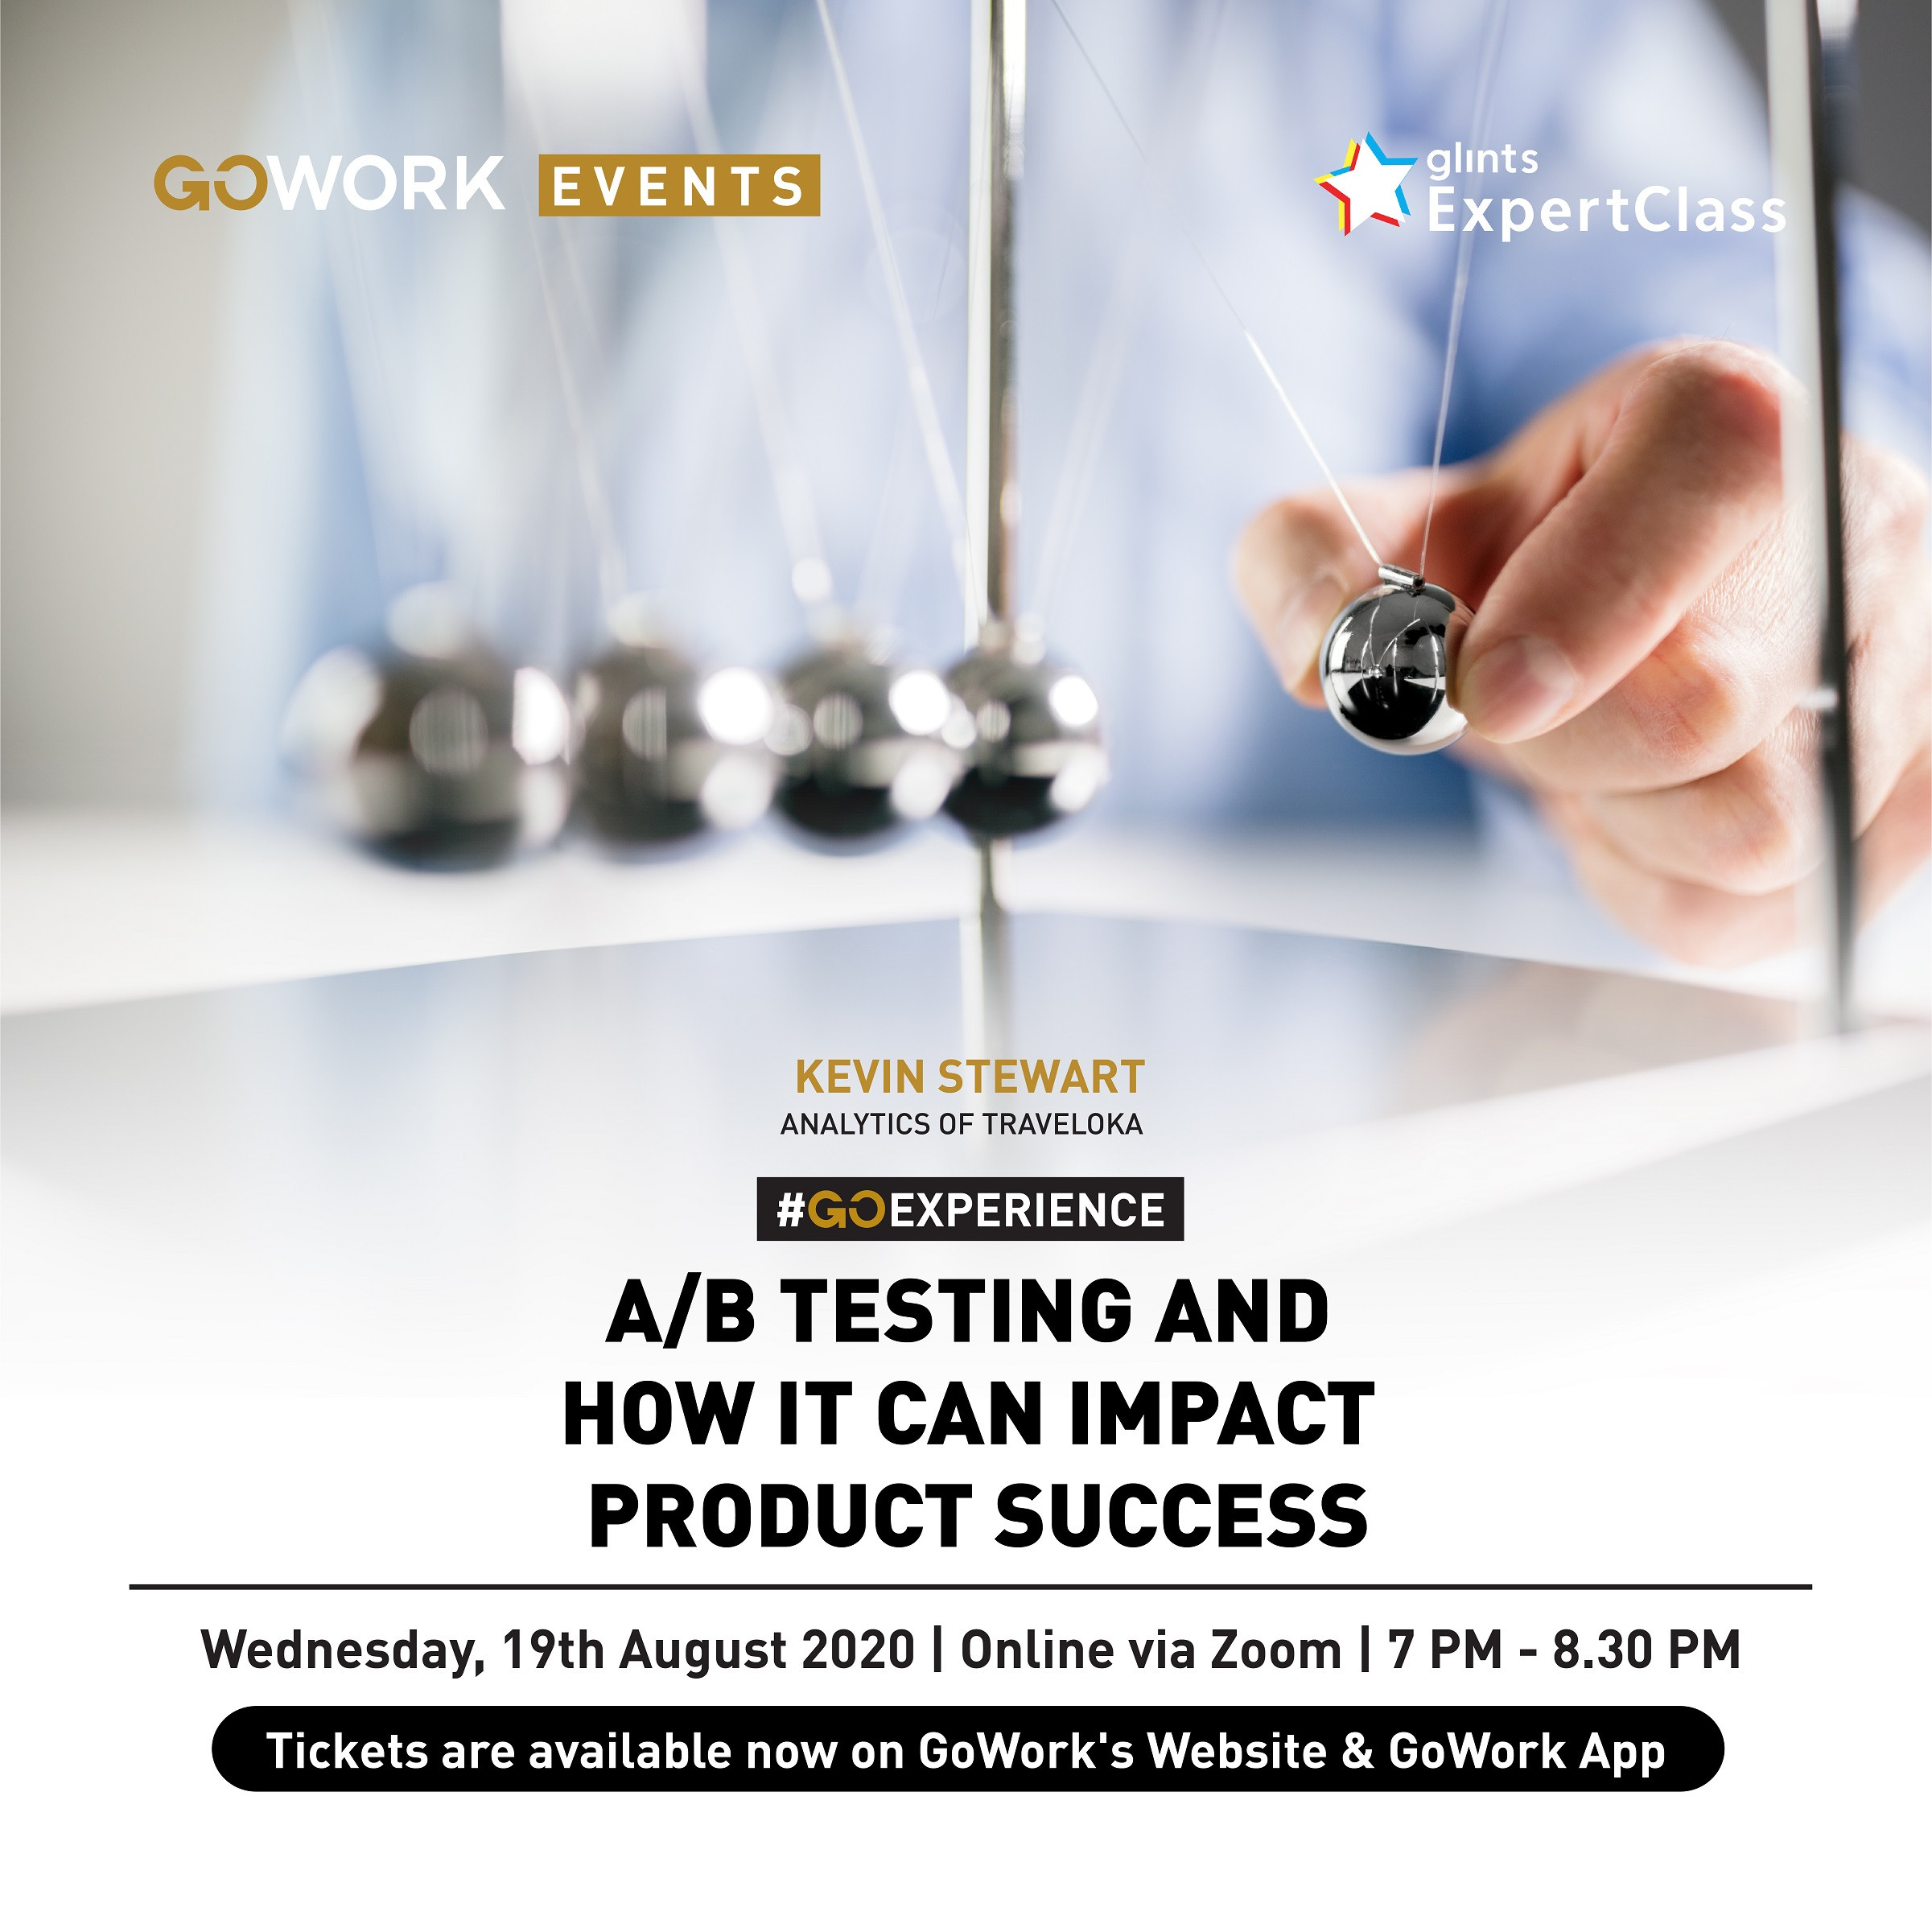 A/B Testing and How It Can Impact Product Success